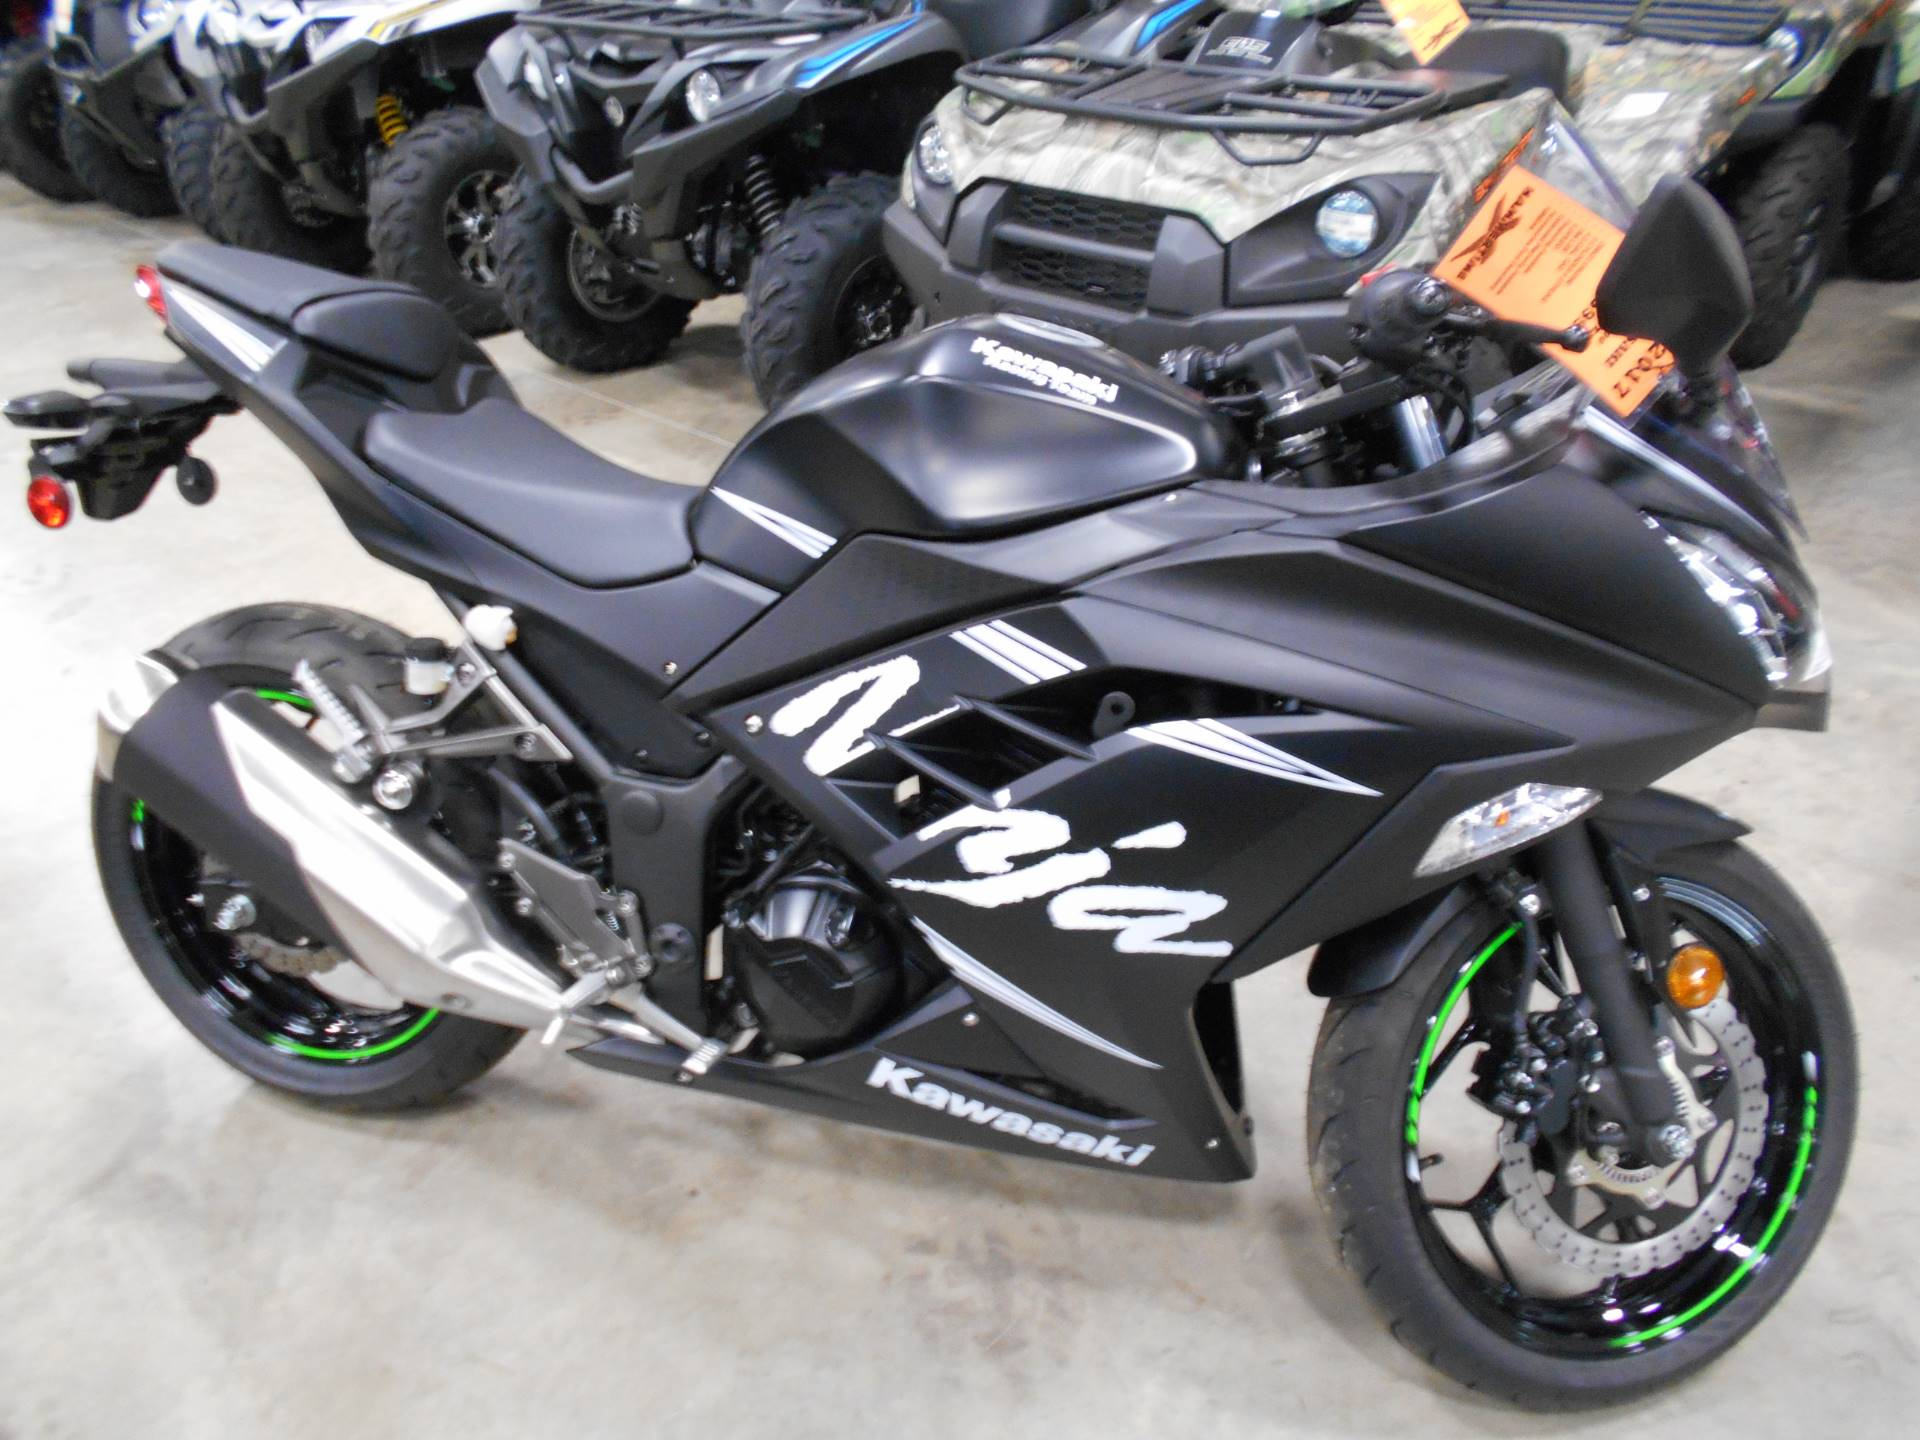 New 2017 Kawasaki Ninja 300 ABS Winter Test Edition Motorcycles in